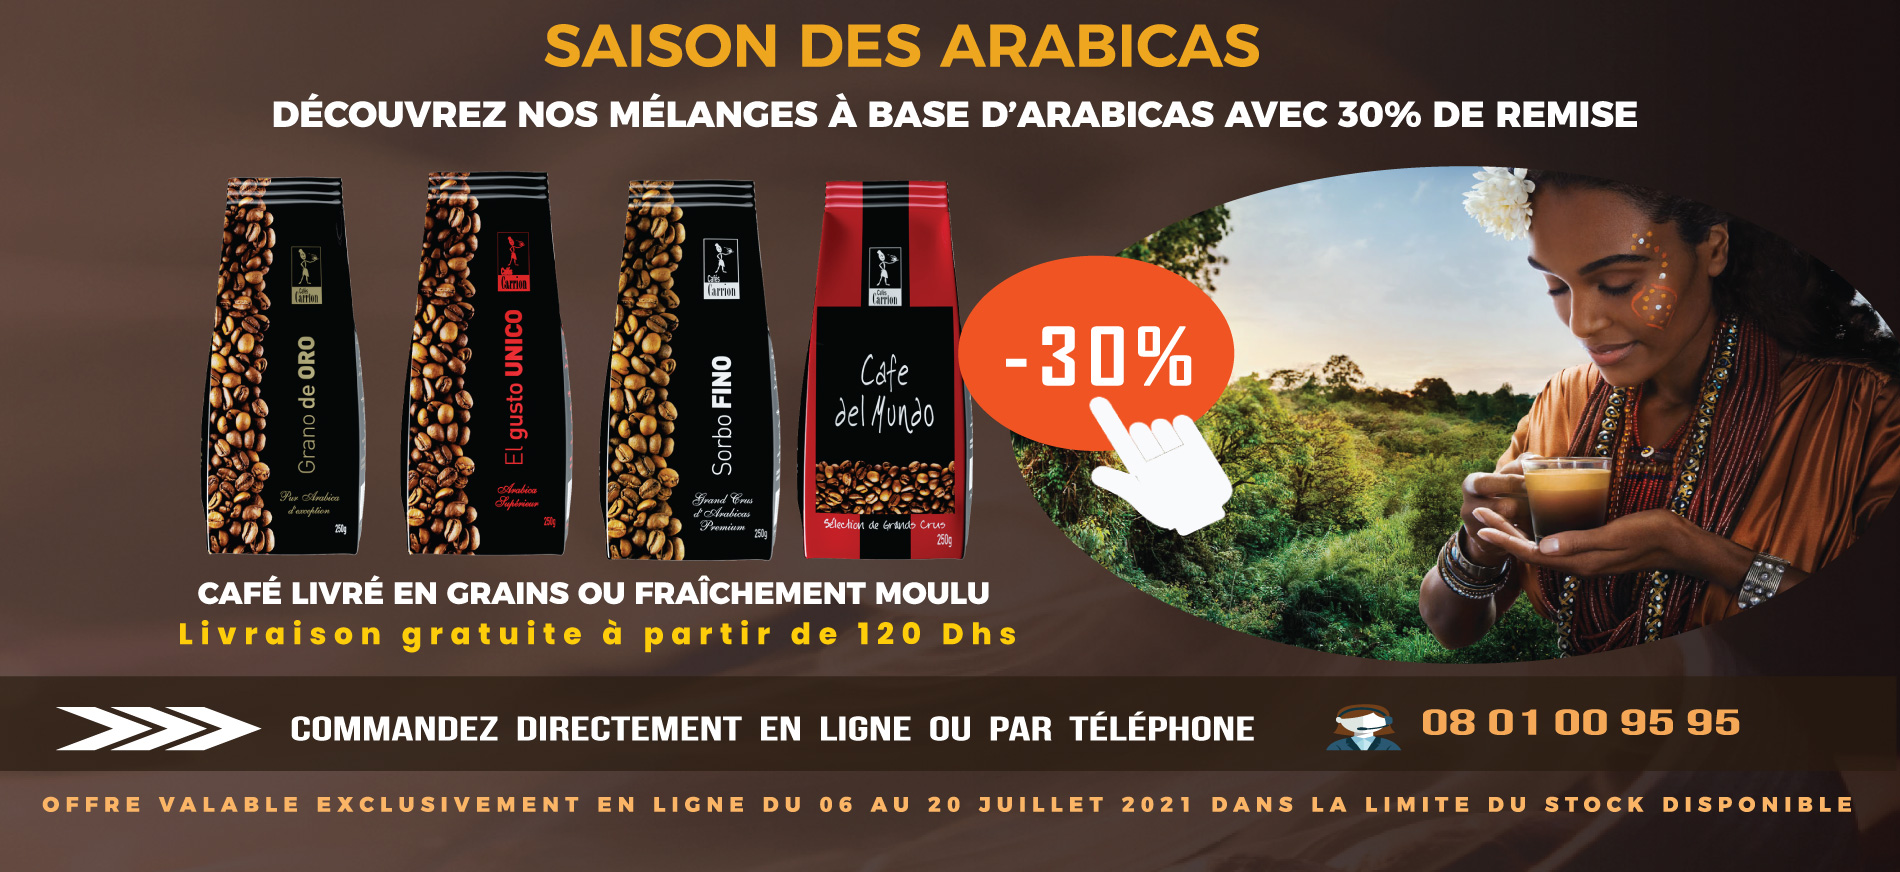 Vect-Accueil-Site-Campagne-Grains-30�off-Juill212